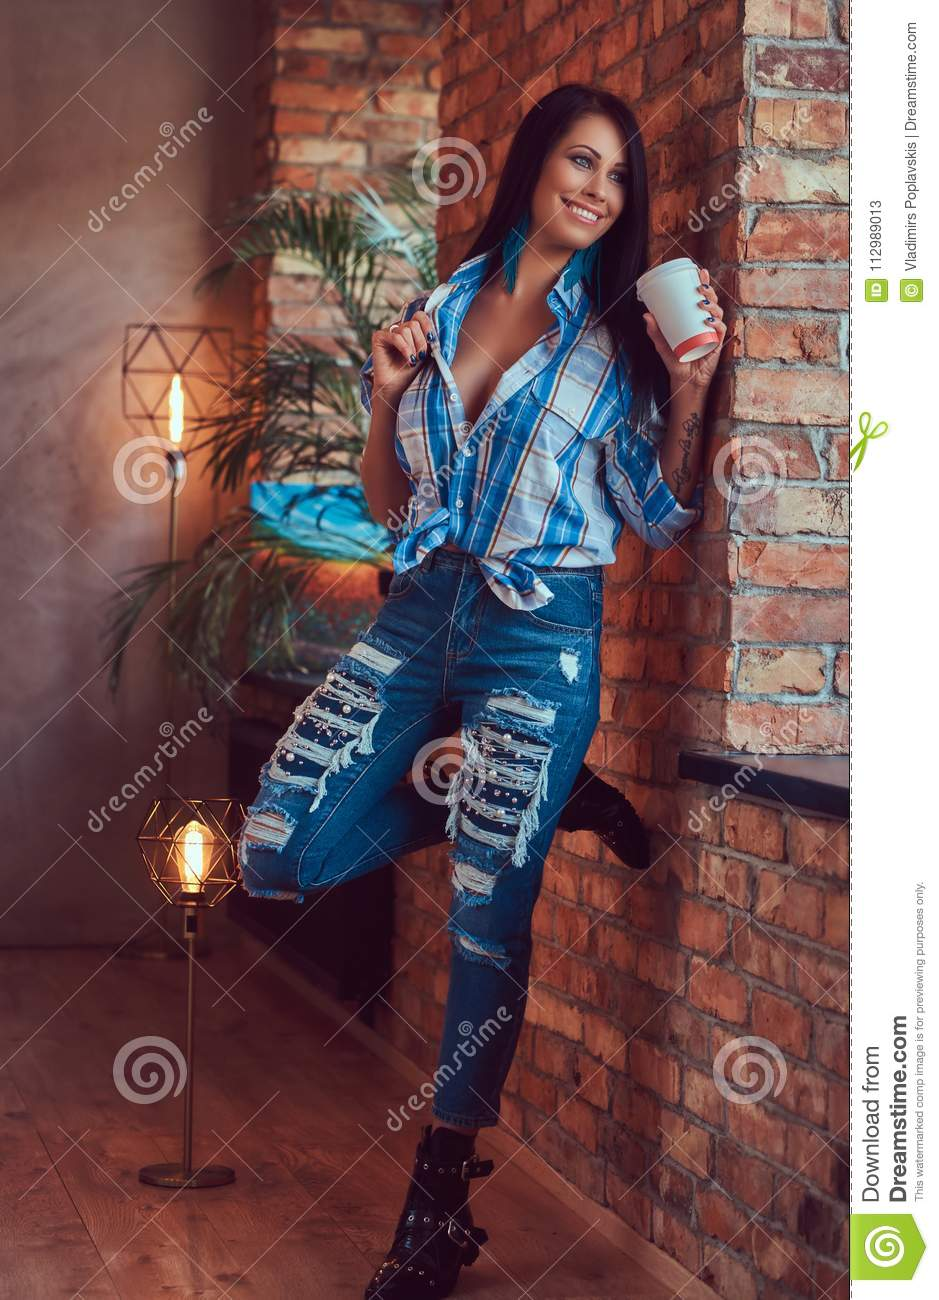 A brunette in a flannel shirt and jeans holds a cup of coffee posing against a brick wall.